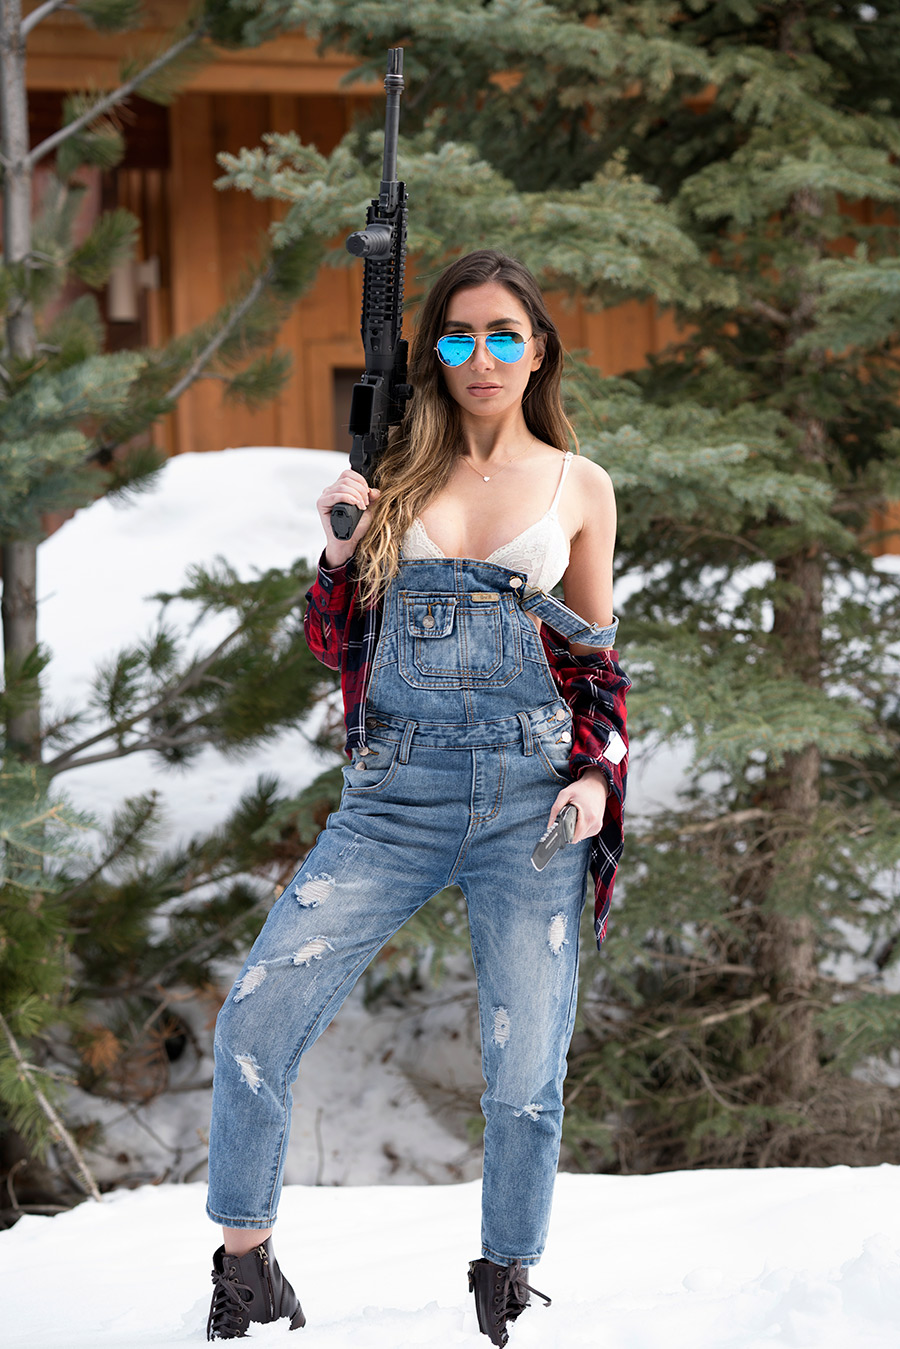 Hot babe with a gun in Park City, Utah.